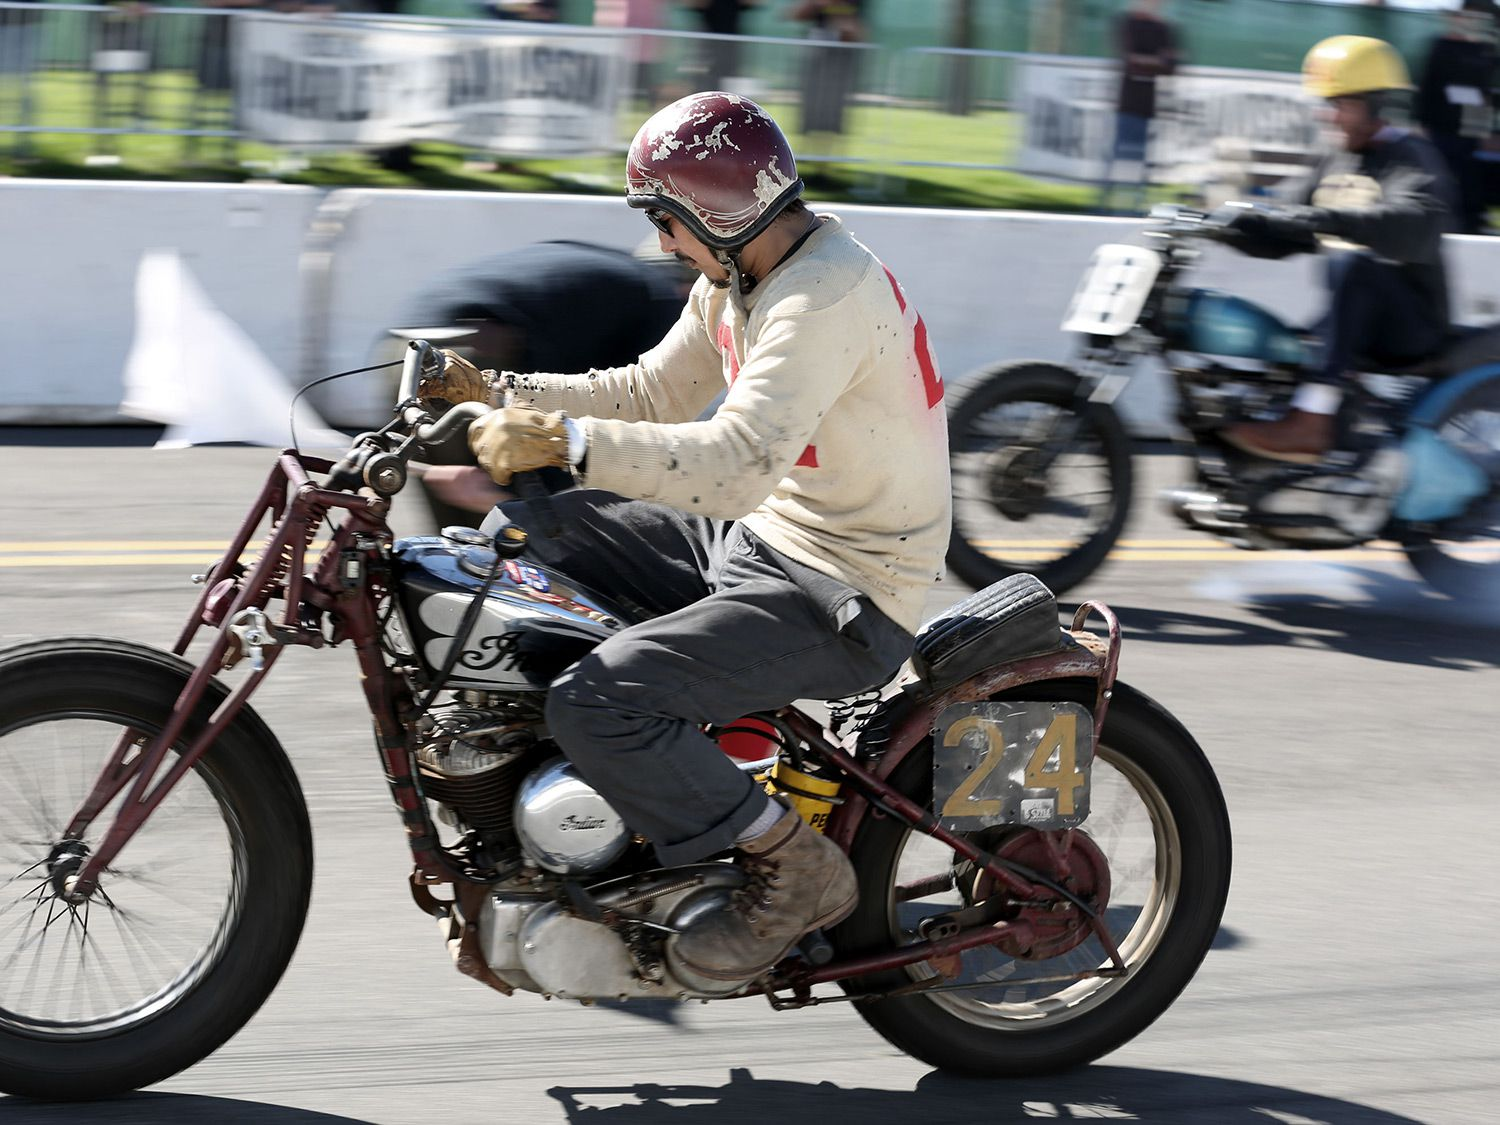 Go Takamine taking another win on the 1937 Indian Sport Scout.